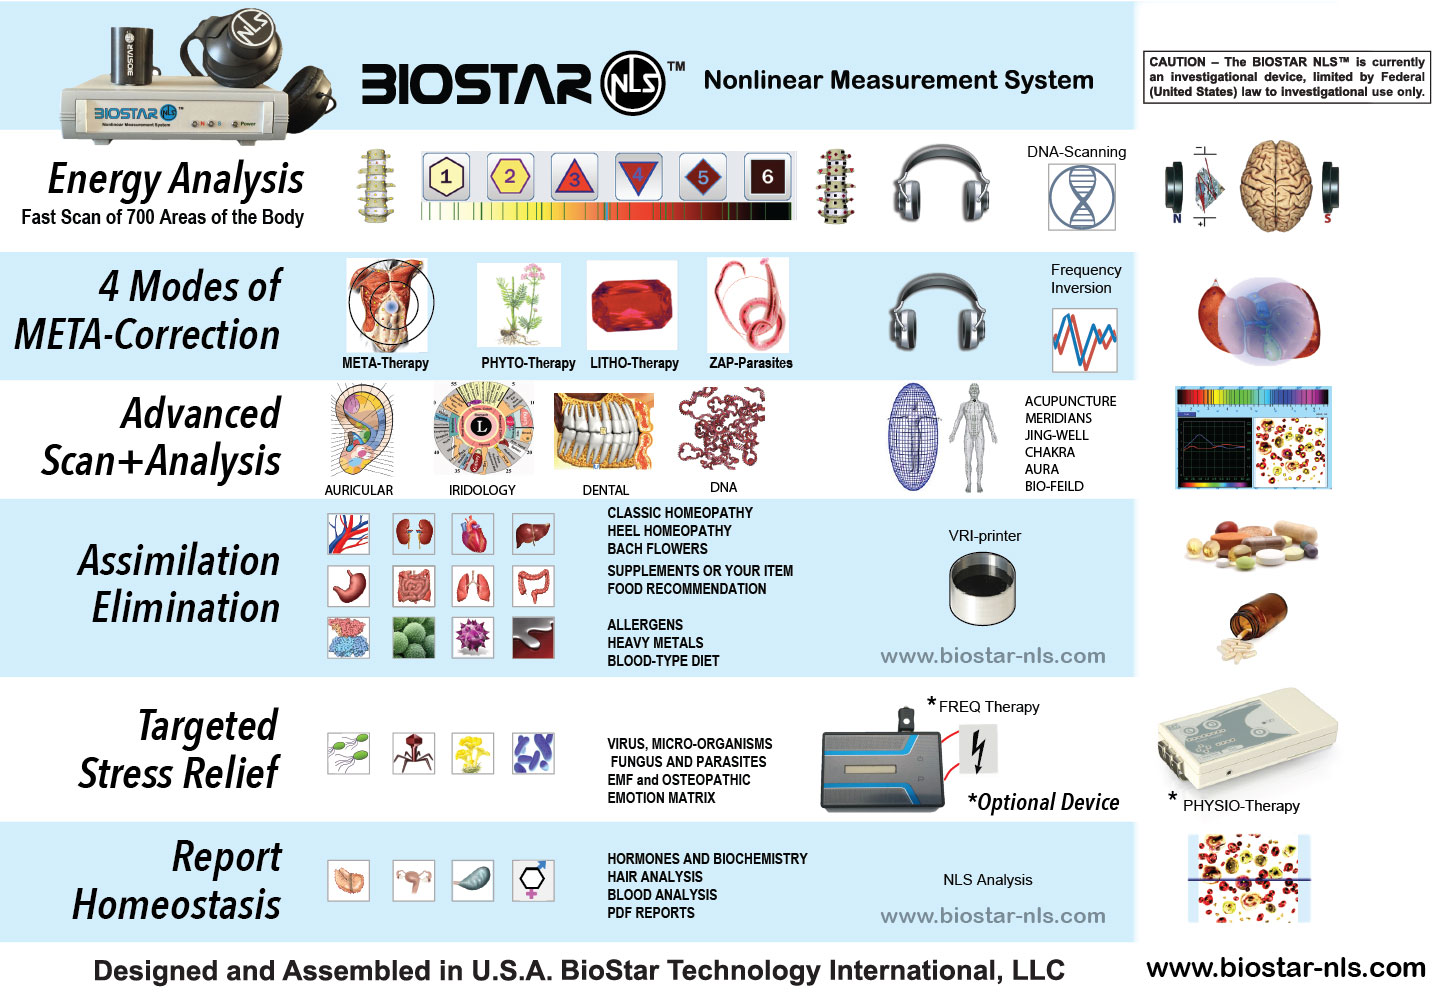 biostar-nls-features.jpg